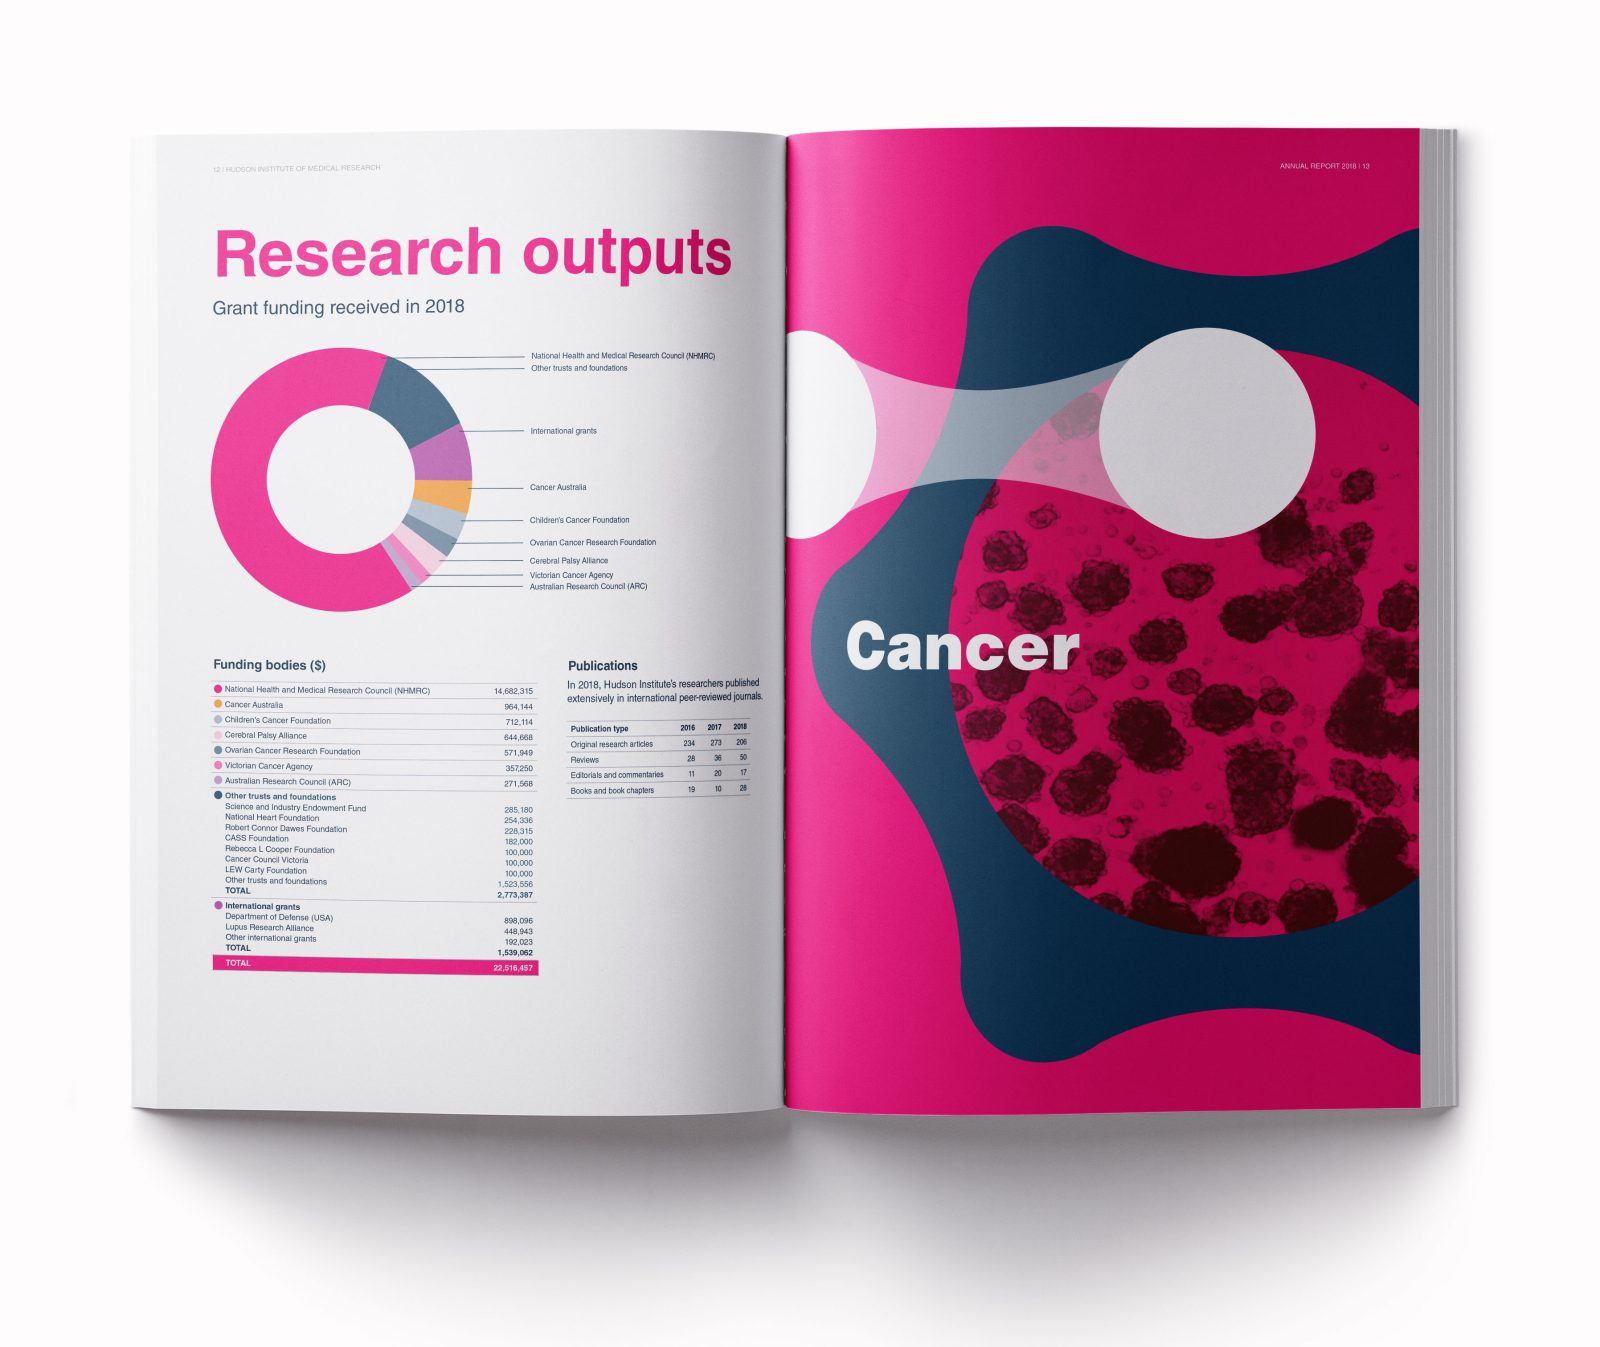 Hudson annual report 2018 Cancer cover spread